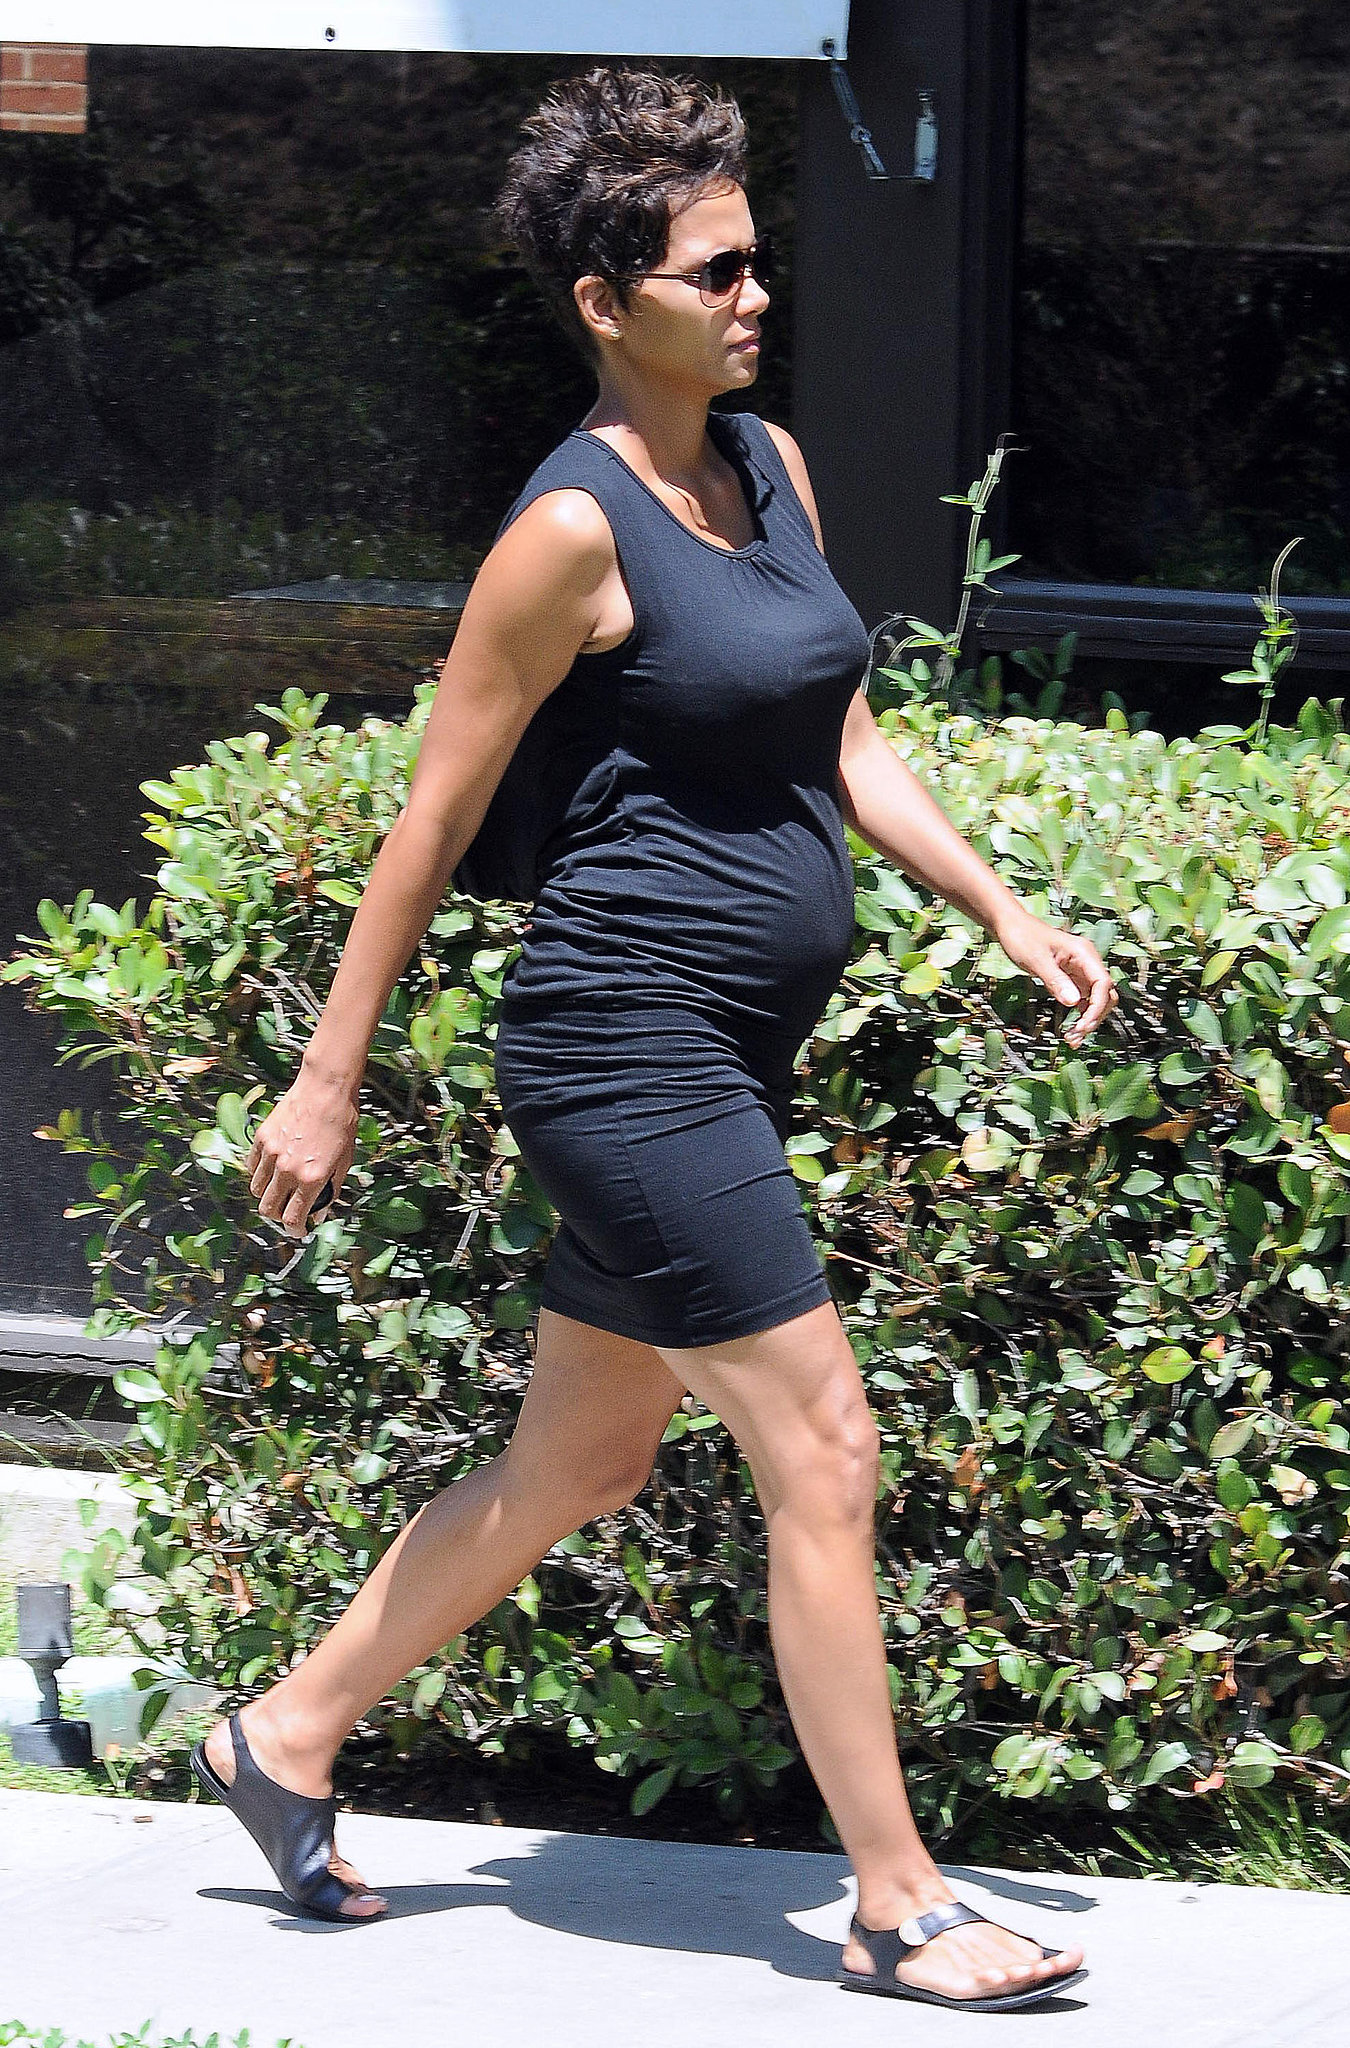 Halle's draped black minidress showed off her growing bump. We love that she finished with a pair of off-kilter black sandals. Follow this style formula with just two pieces: an LBD and cool black flats.